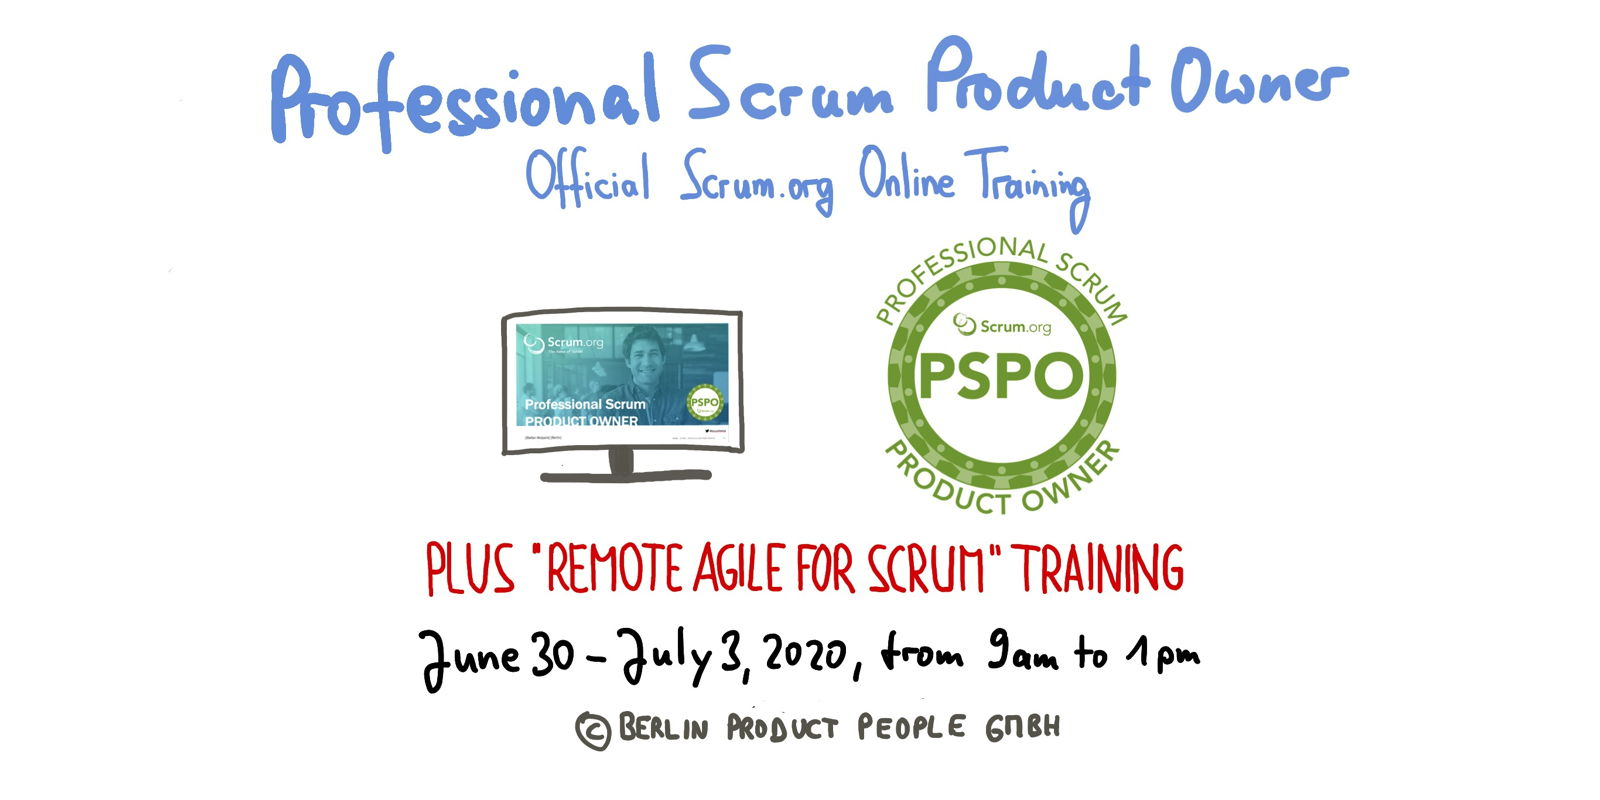 📅 🖥 Professional Scrum Product Owner Training — Online: June 30 to July 3, 2020